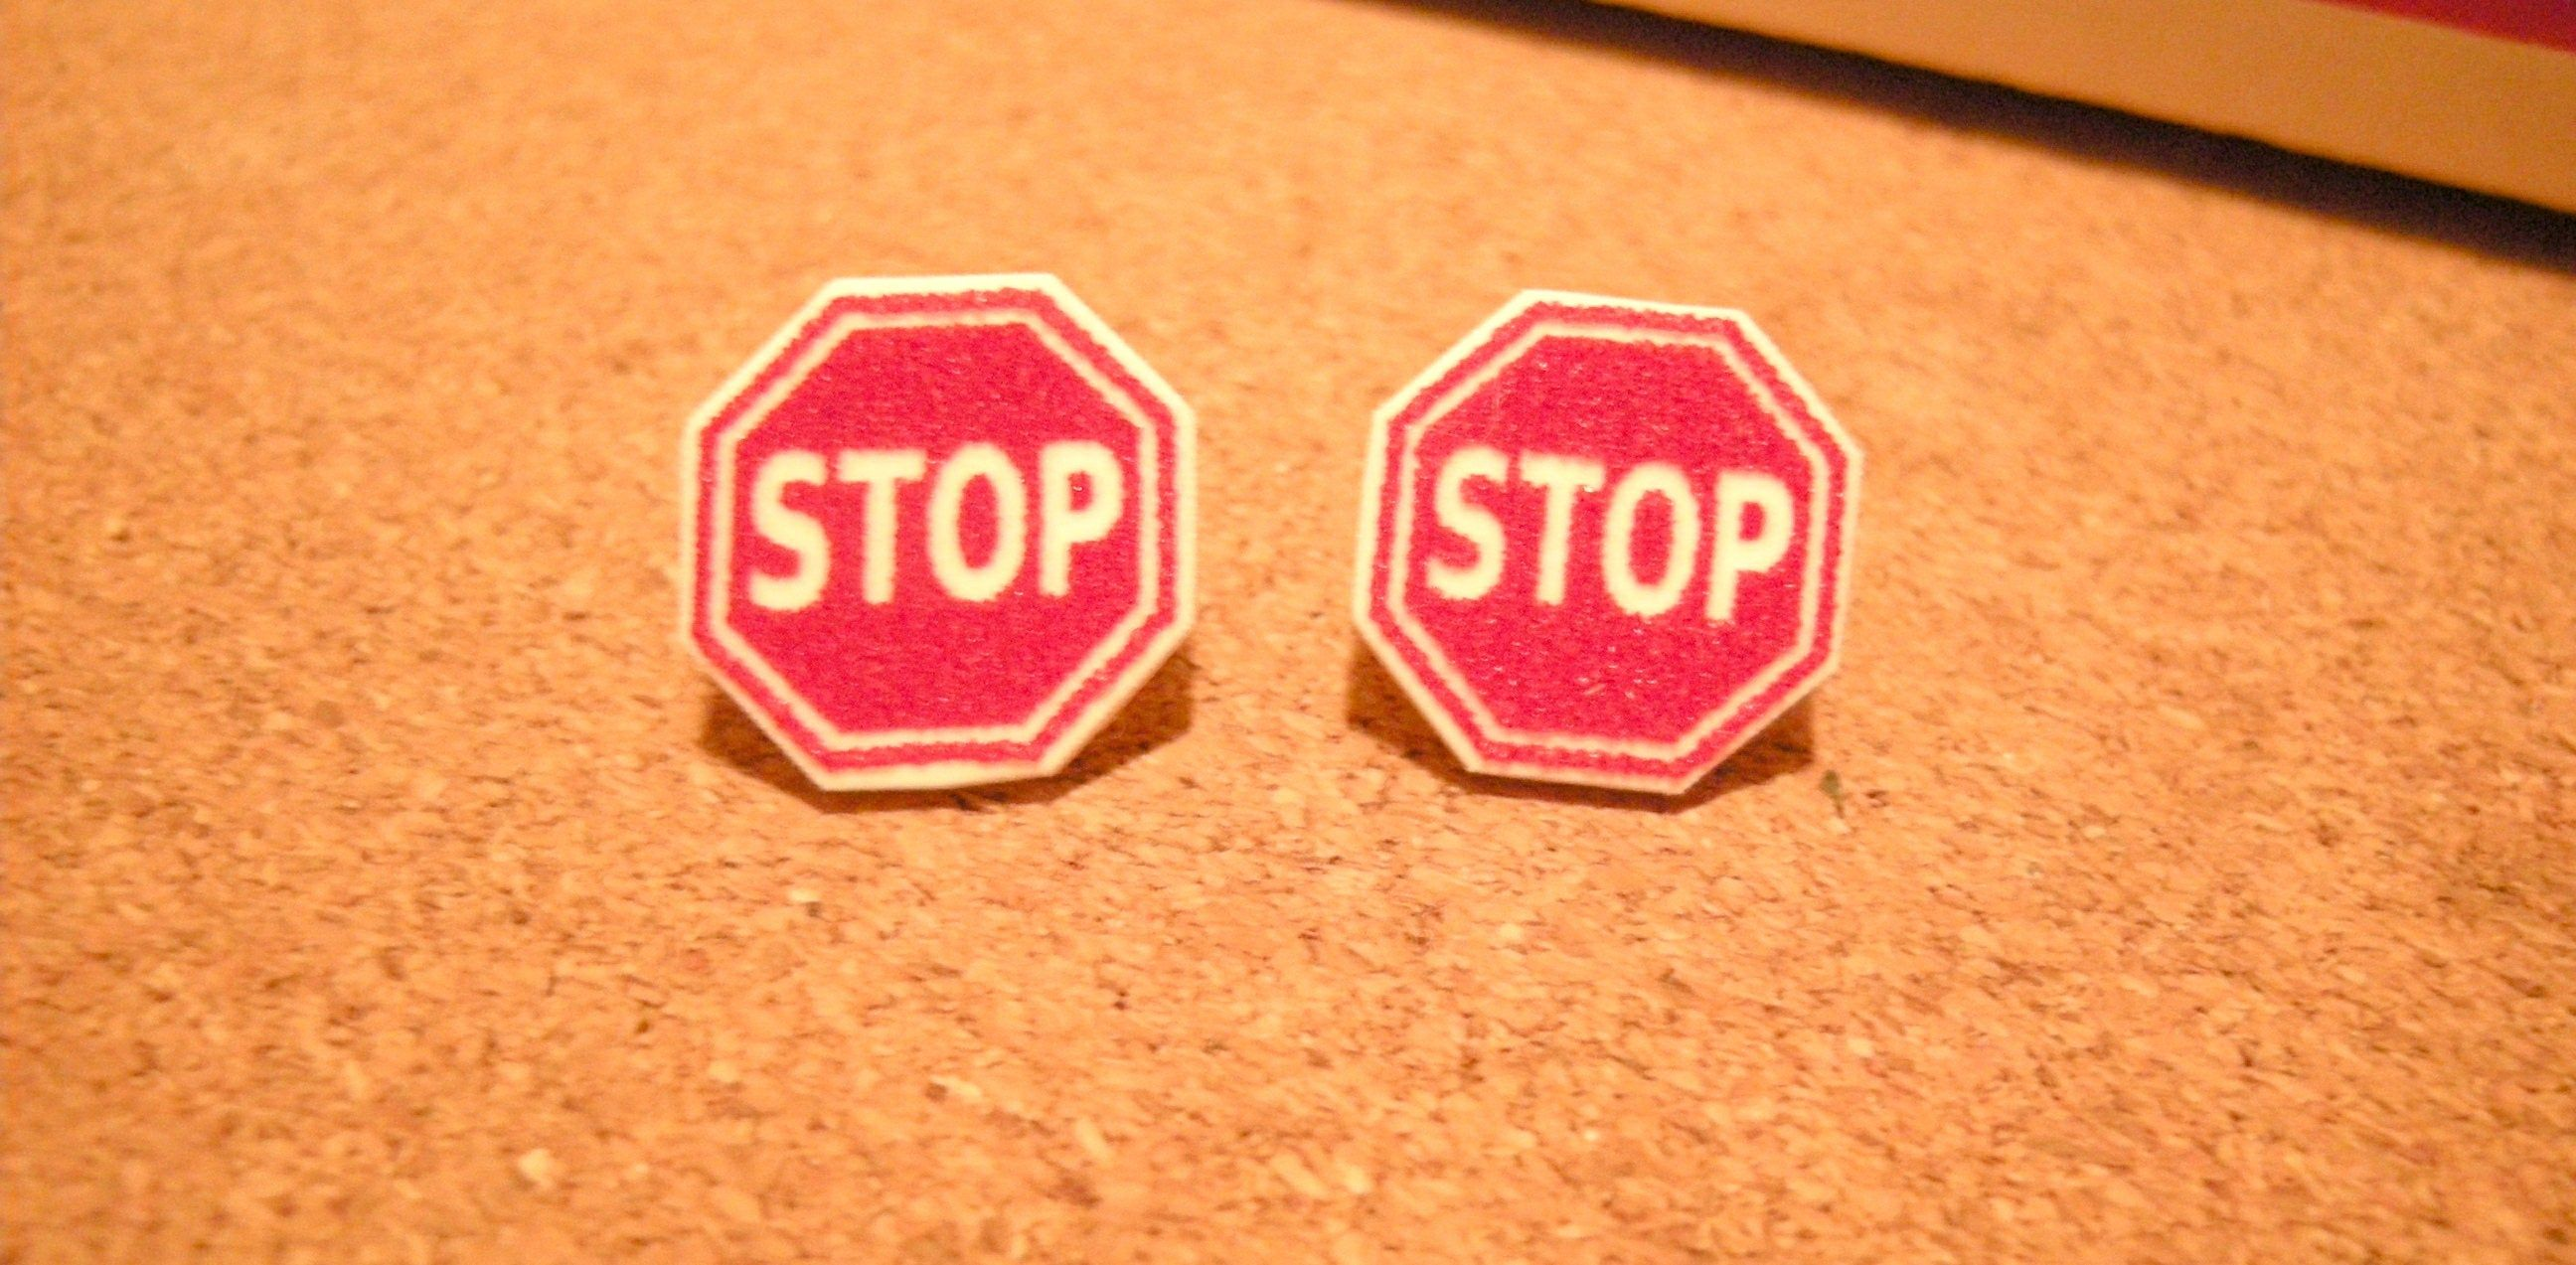 Stop Sign Pierced Earrings, handmade jewelry, 13mm new driver protest statement jewelry